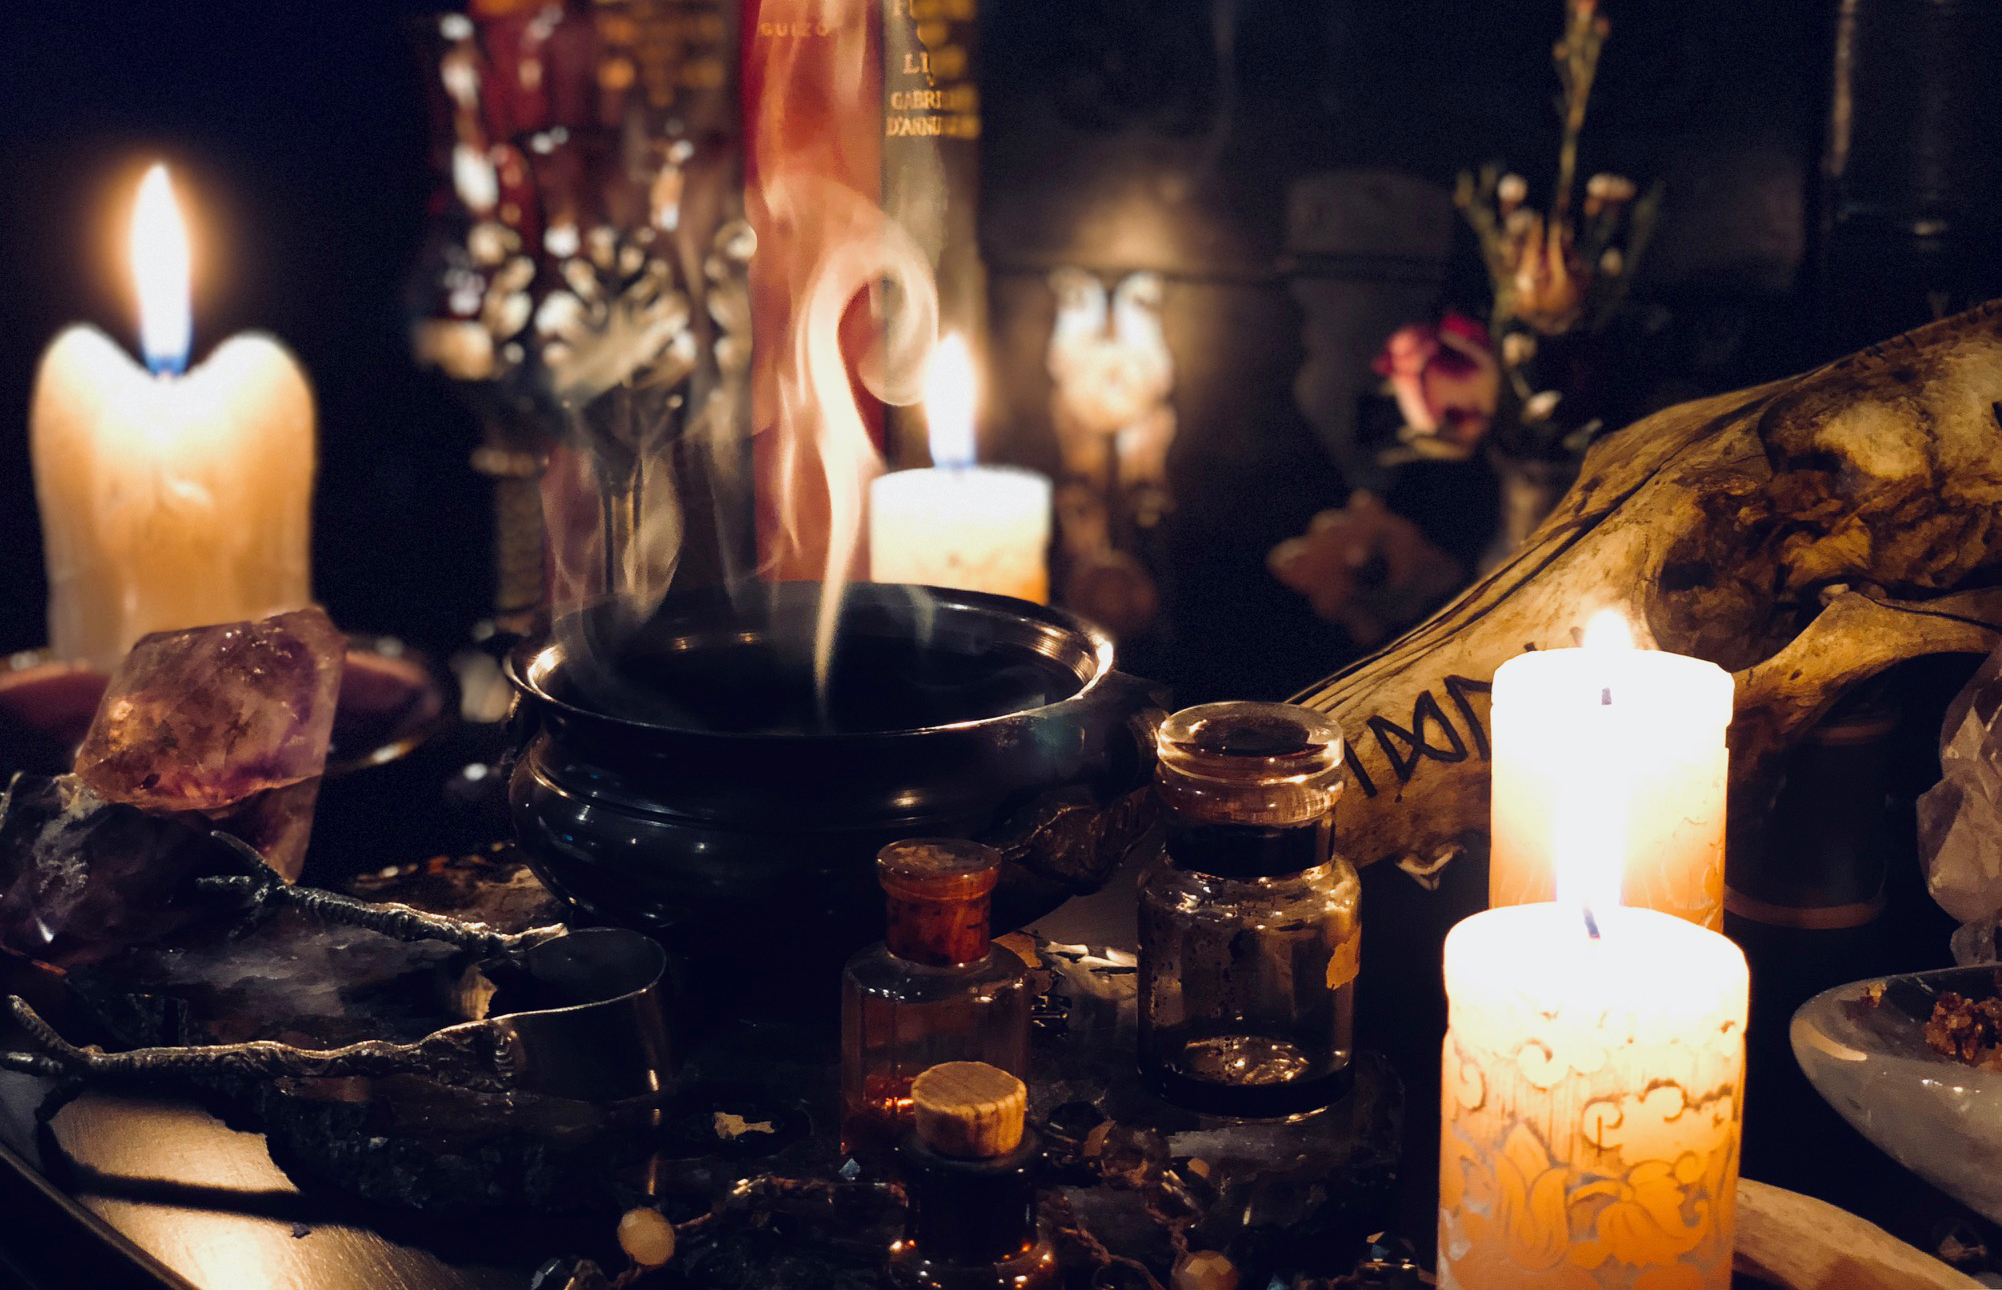 wicca-pagan-witchcraft-supplies-spell-candles-white-magick.jpg